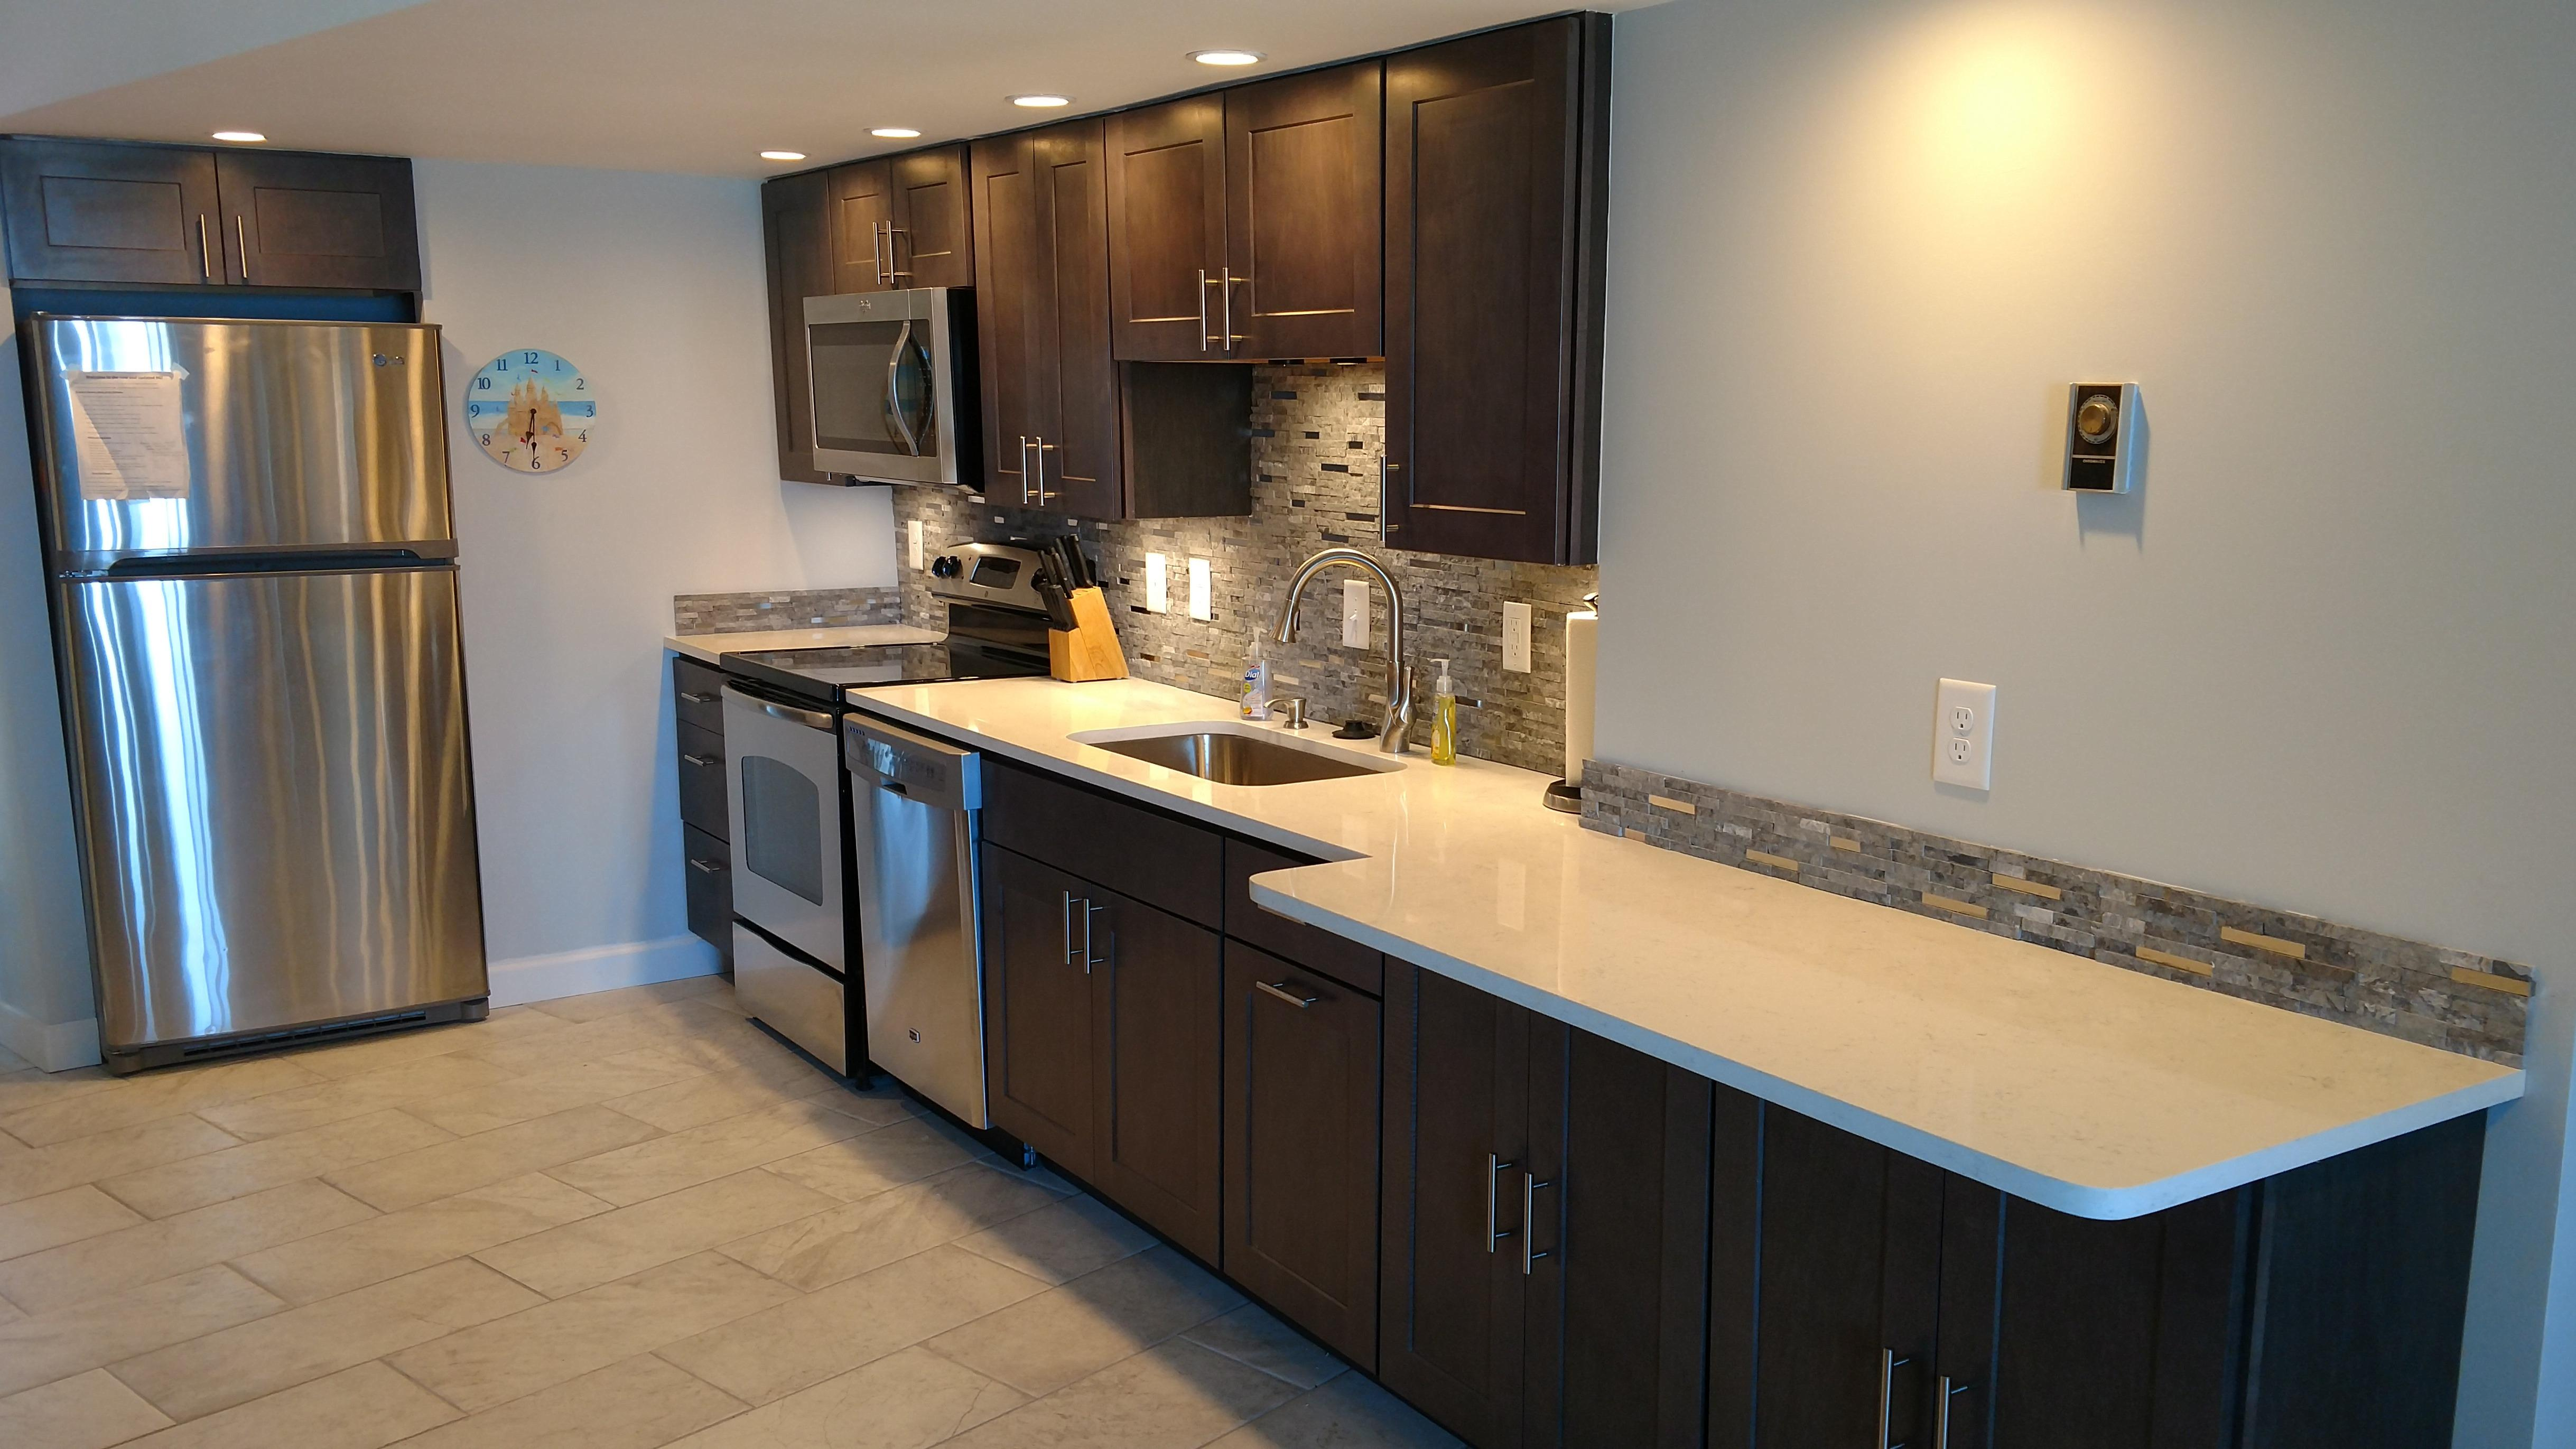 Accurate Upgrades Home Improvements LLC image 17